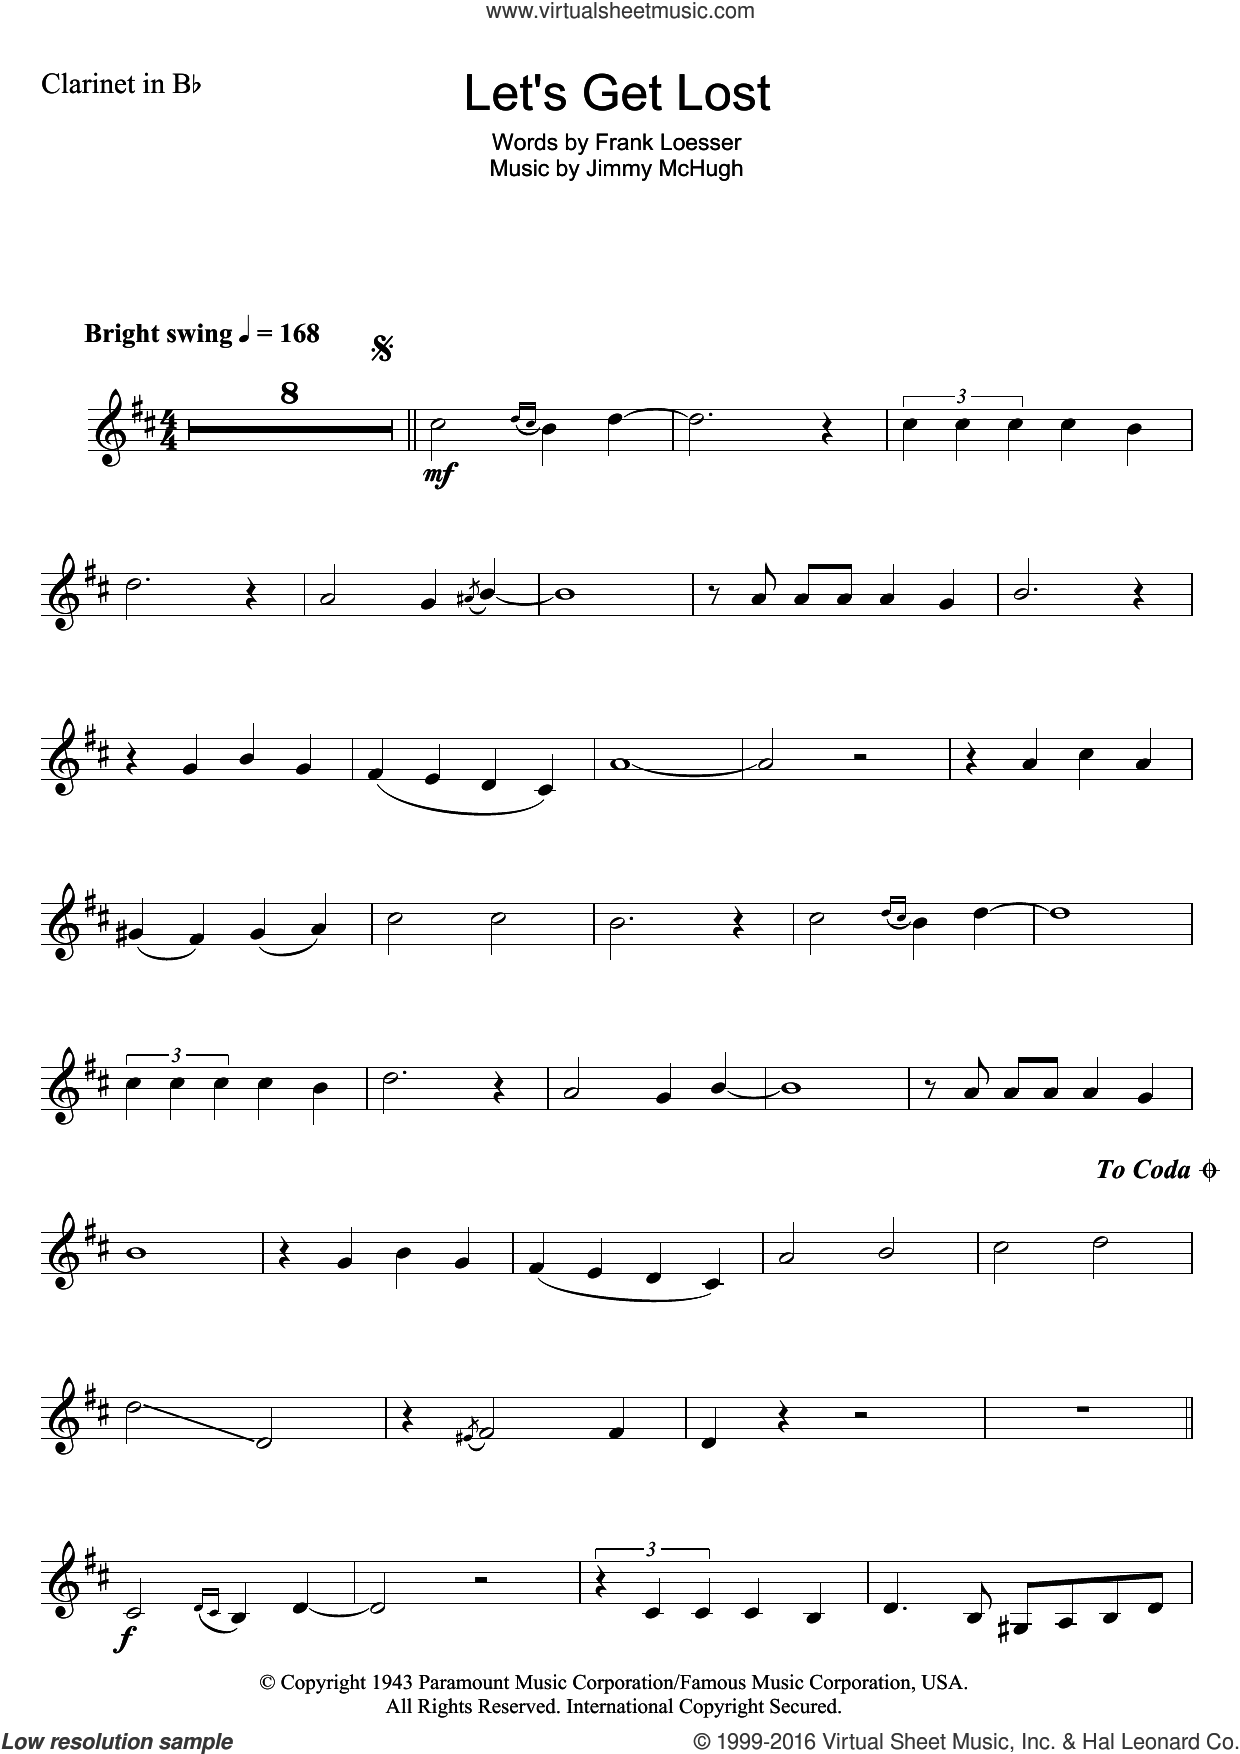 Let's Get Lost sheet music for clarinet solo by Chet Baker, Frank Loesser and Jimmy McHugh, intermediate skill level